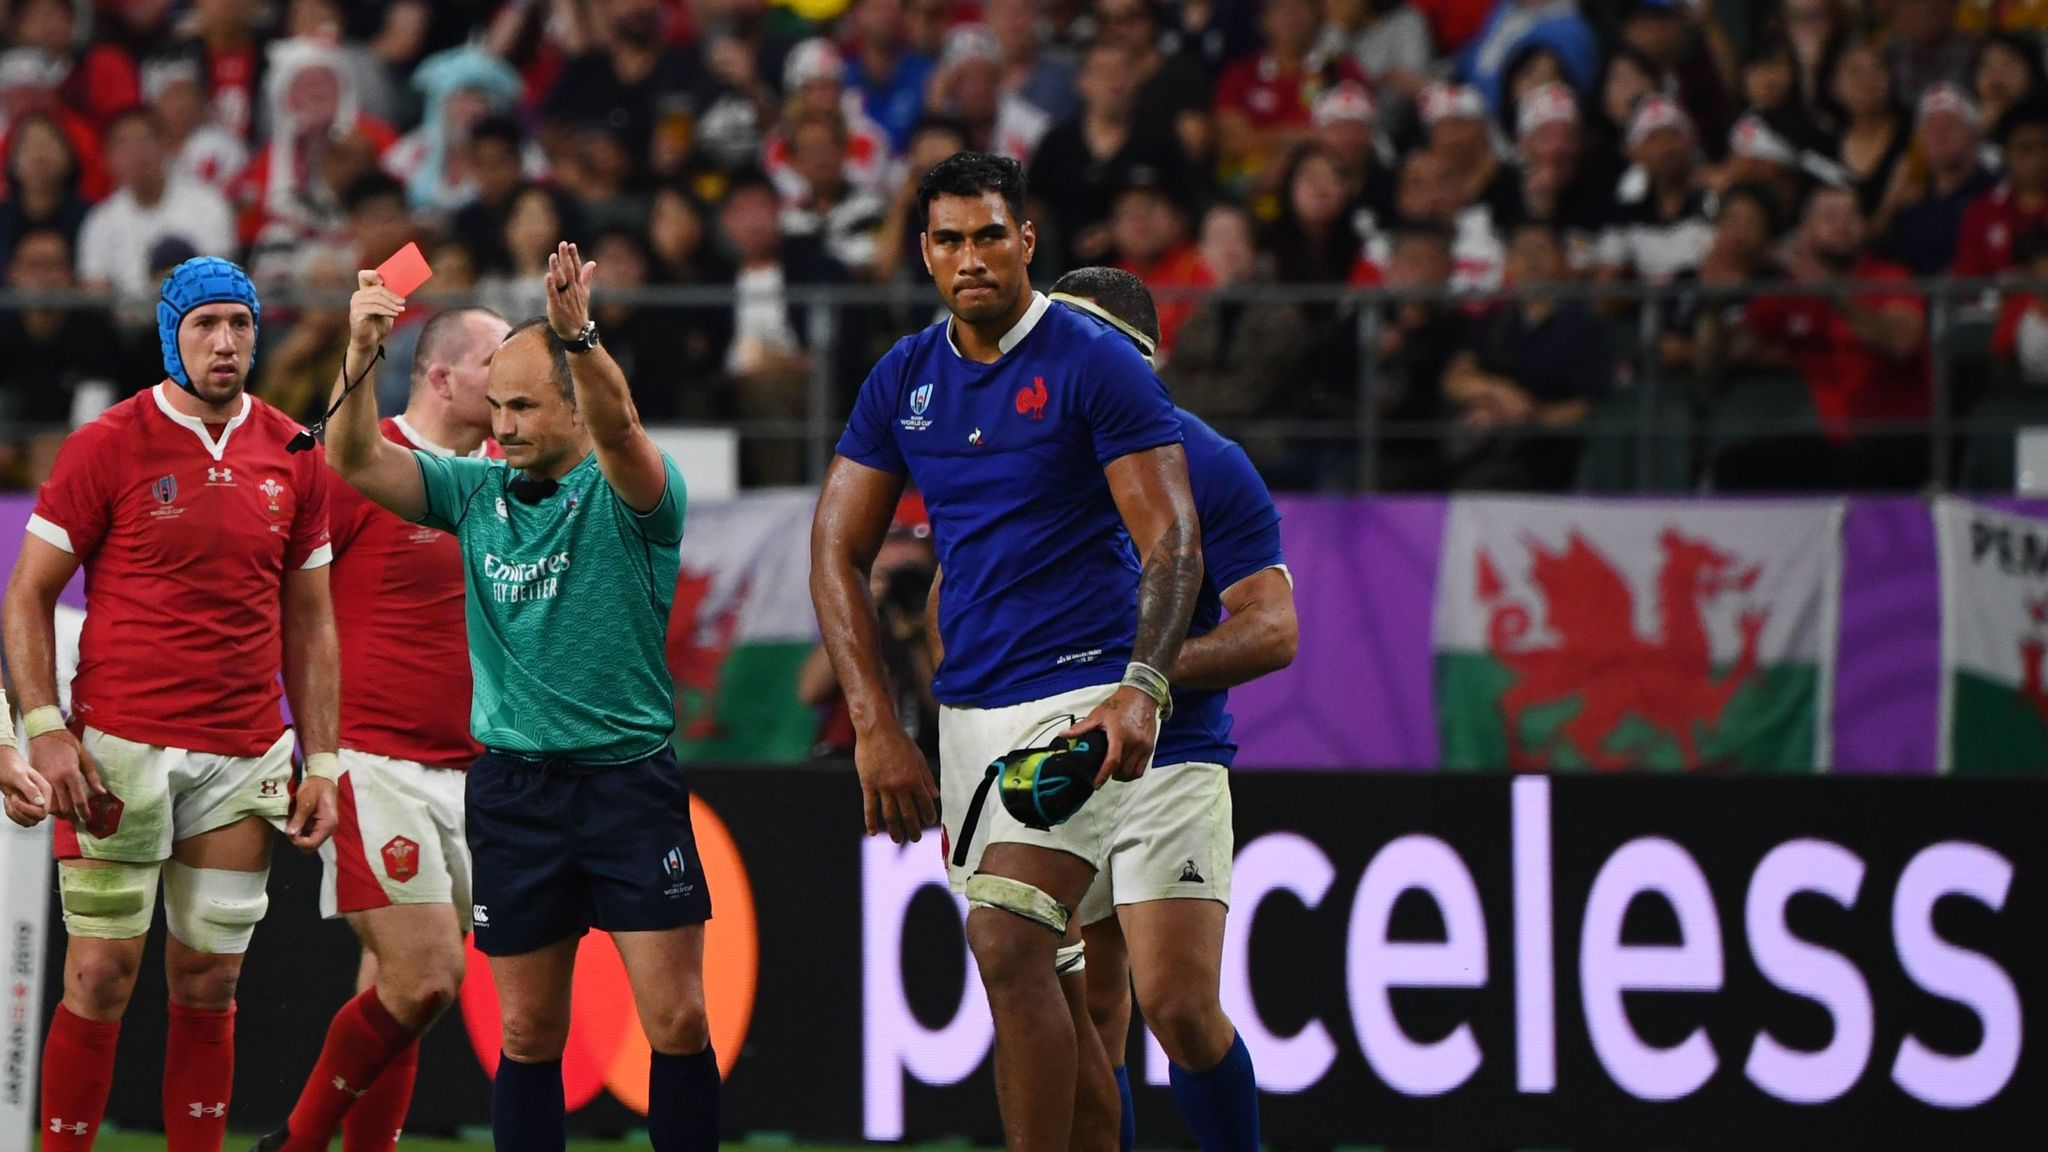 Rugby World Cup referee Jaco Peyper mocks France elbow red card after Wales win